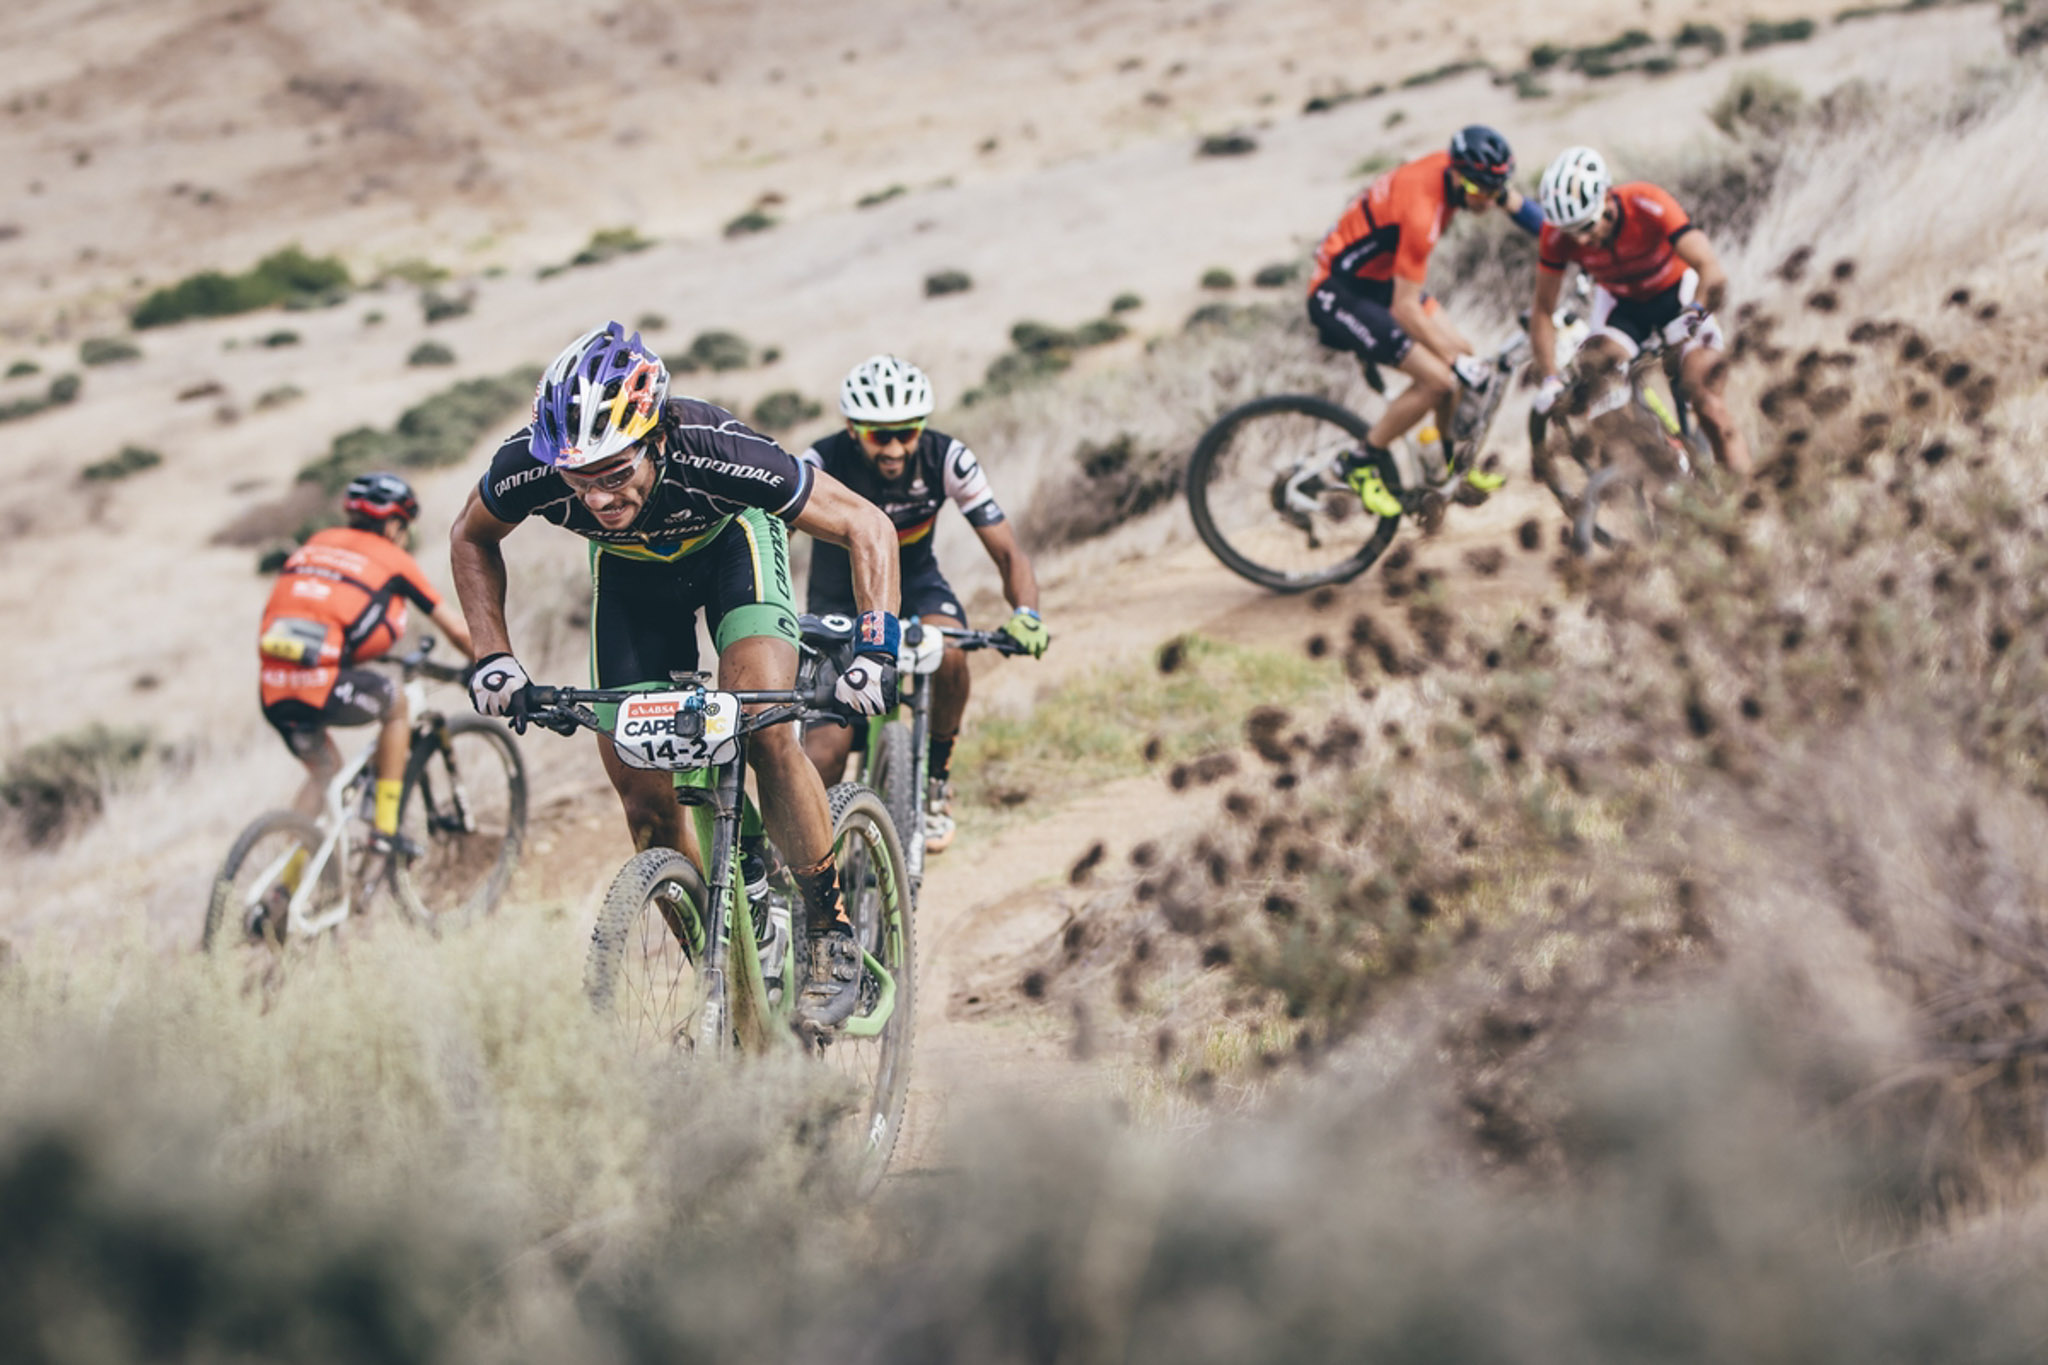 Team Cannondale Factory Racing's Manuel Fumic and Henrique Avancini on their way to stage victory during the final stage (stage 7) of the 2016 Absa Cape Epic Mountain Bike stage race from Boschendal in Stellenbosch to Meerendal Wine Estate in Durbanville, South Africa on the 20th March 2016 Photo by Ewald Sadie/Cape Epic/SPORTZPICS PLEASE ENSURE THE APPROPRIATE CREDIT IS GIVEN TO THE PHOTOGRAPHER AND SPORTZPICS ALONG WITH THE ABSA CAPE EPIC ace2016